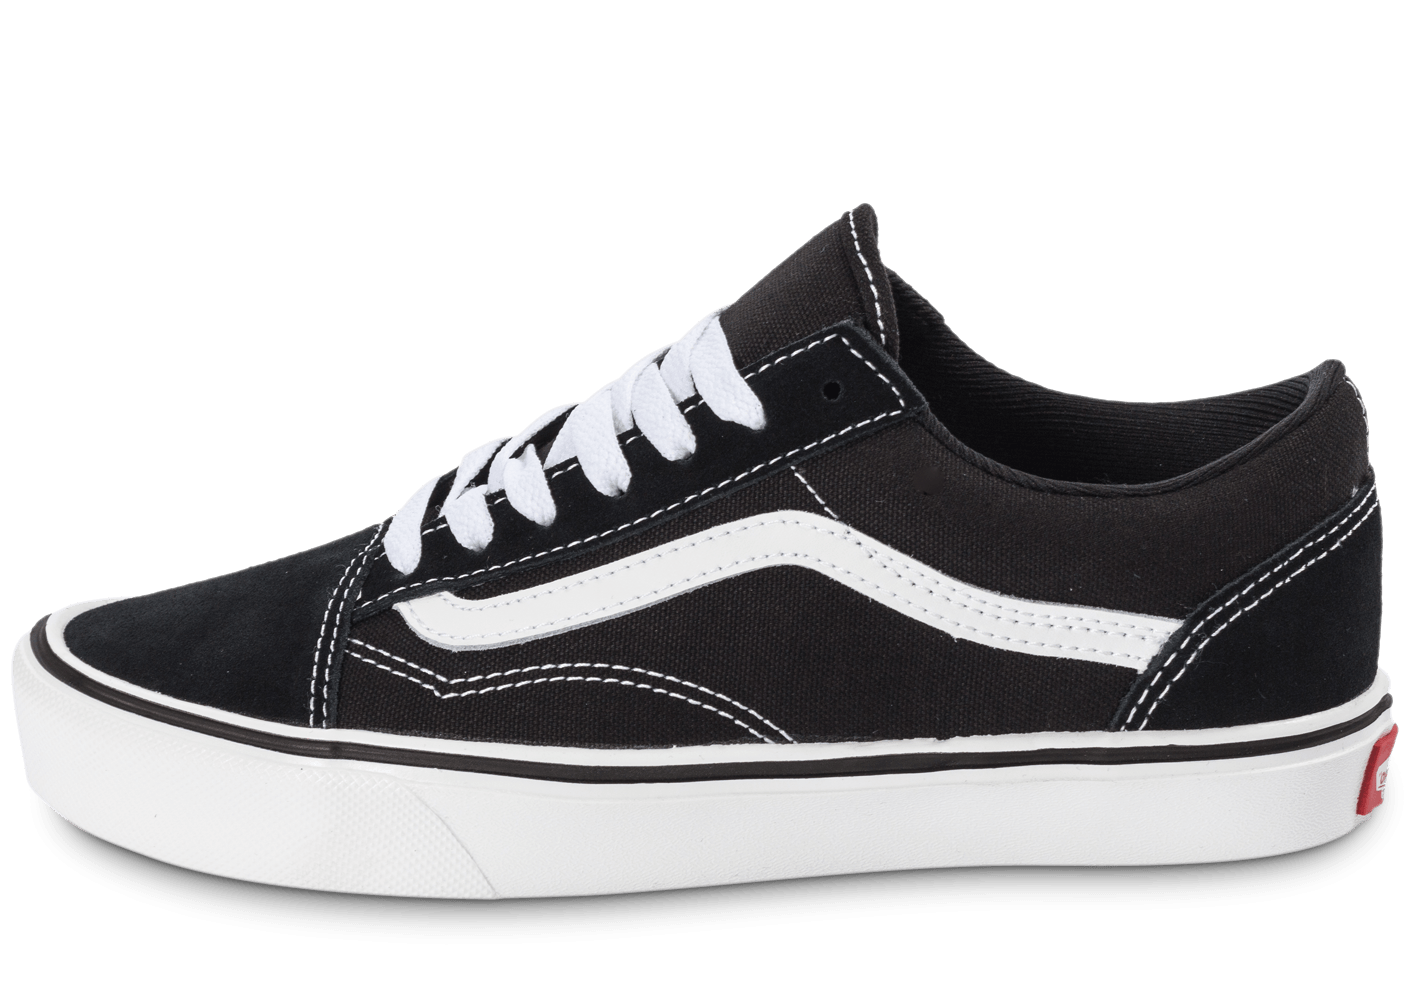 vans old skool noire et blanche chaussures femme chausport. Black Bedroom Furniture Sets. Home Design Ideas